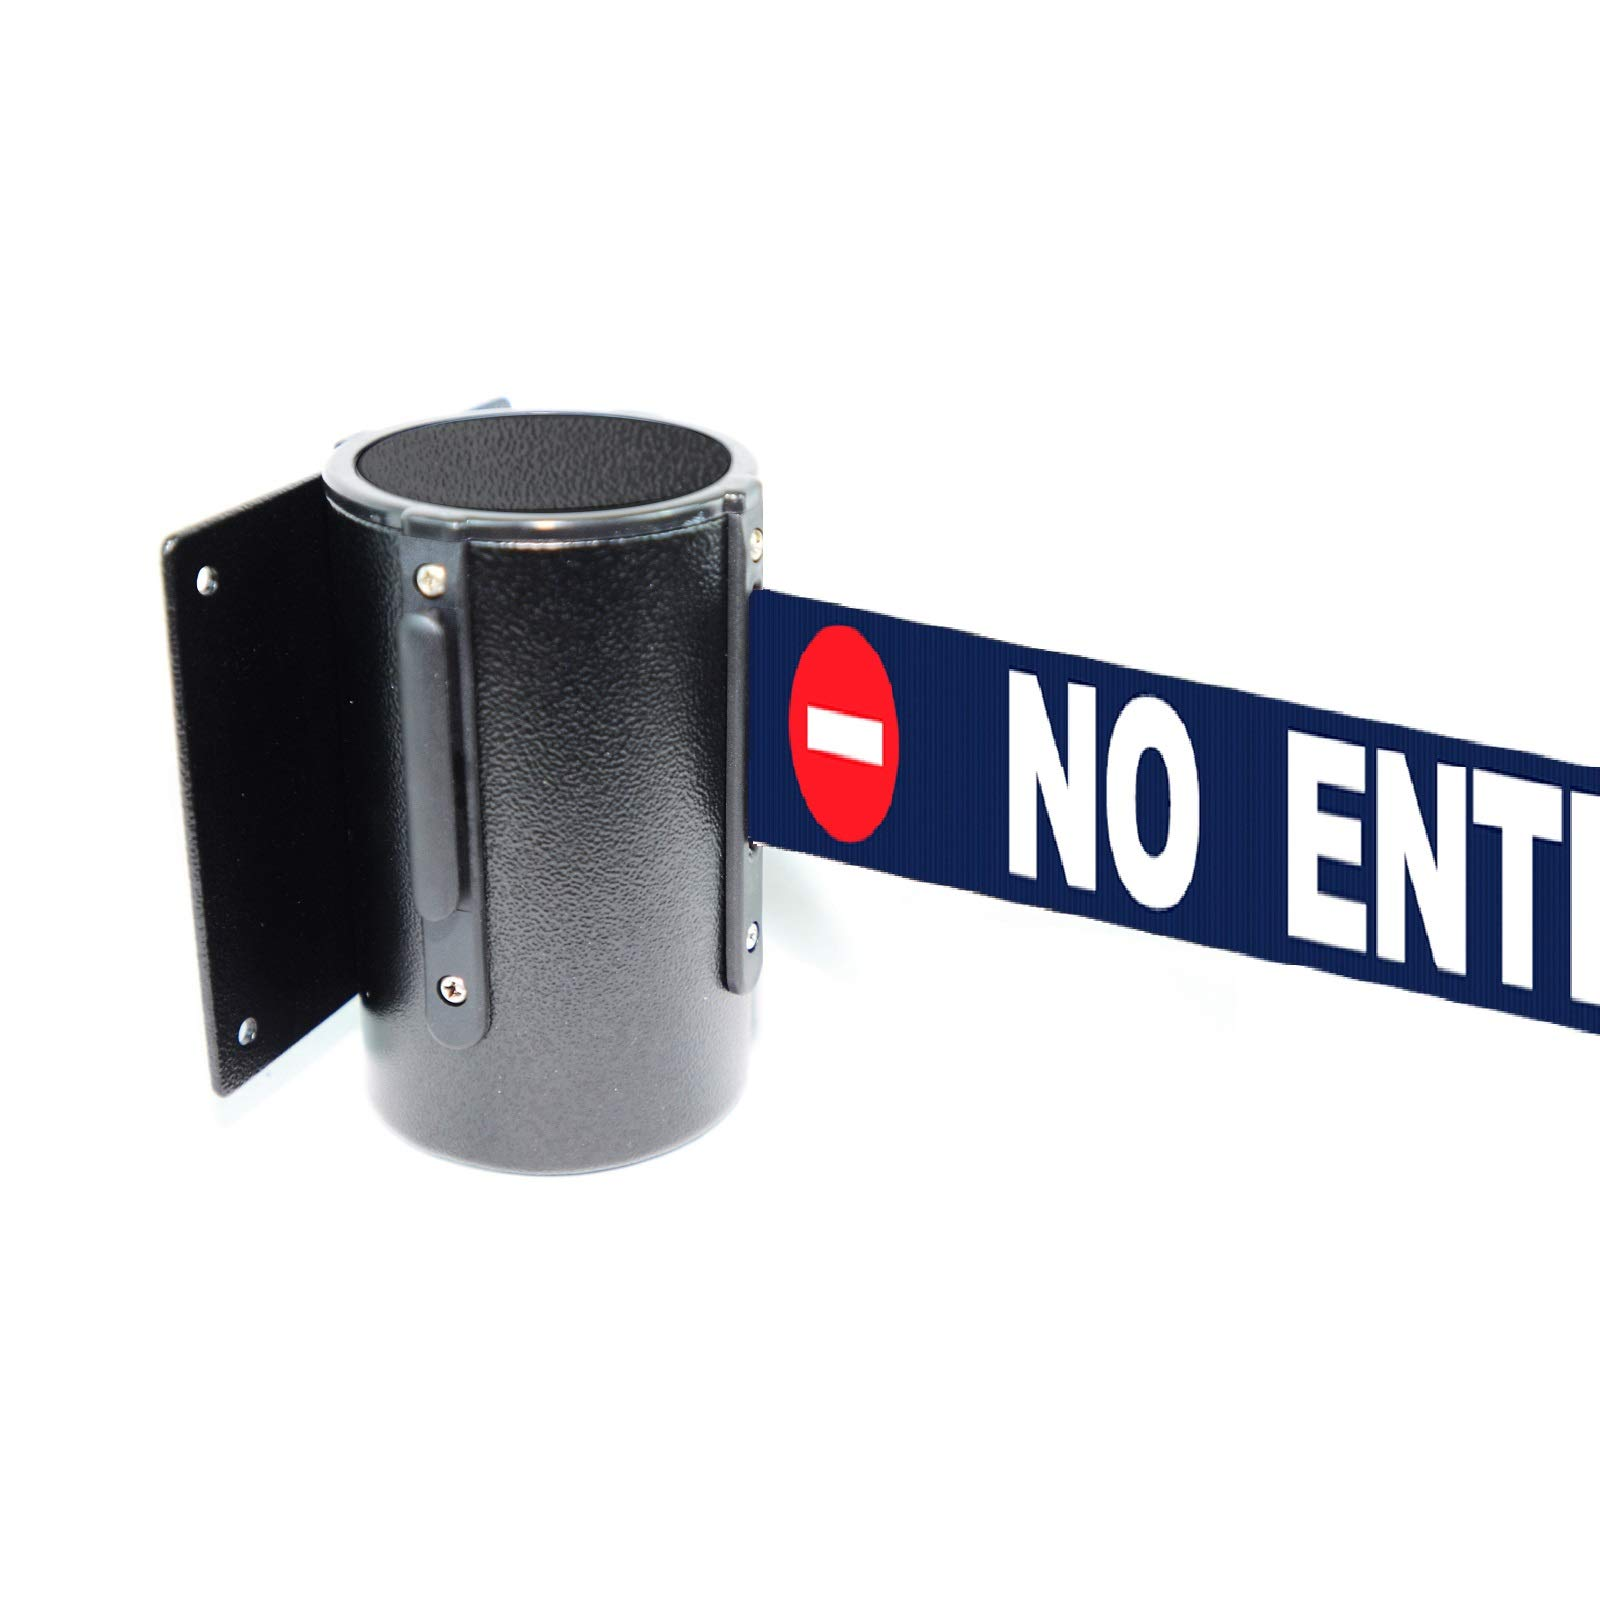 Retractable Safety Wall Queue Barrier With Tuff Tex Black Finished (120'' No Entry) by Crowd Control Center